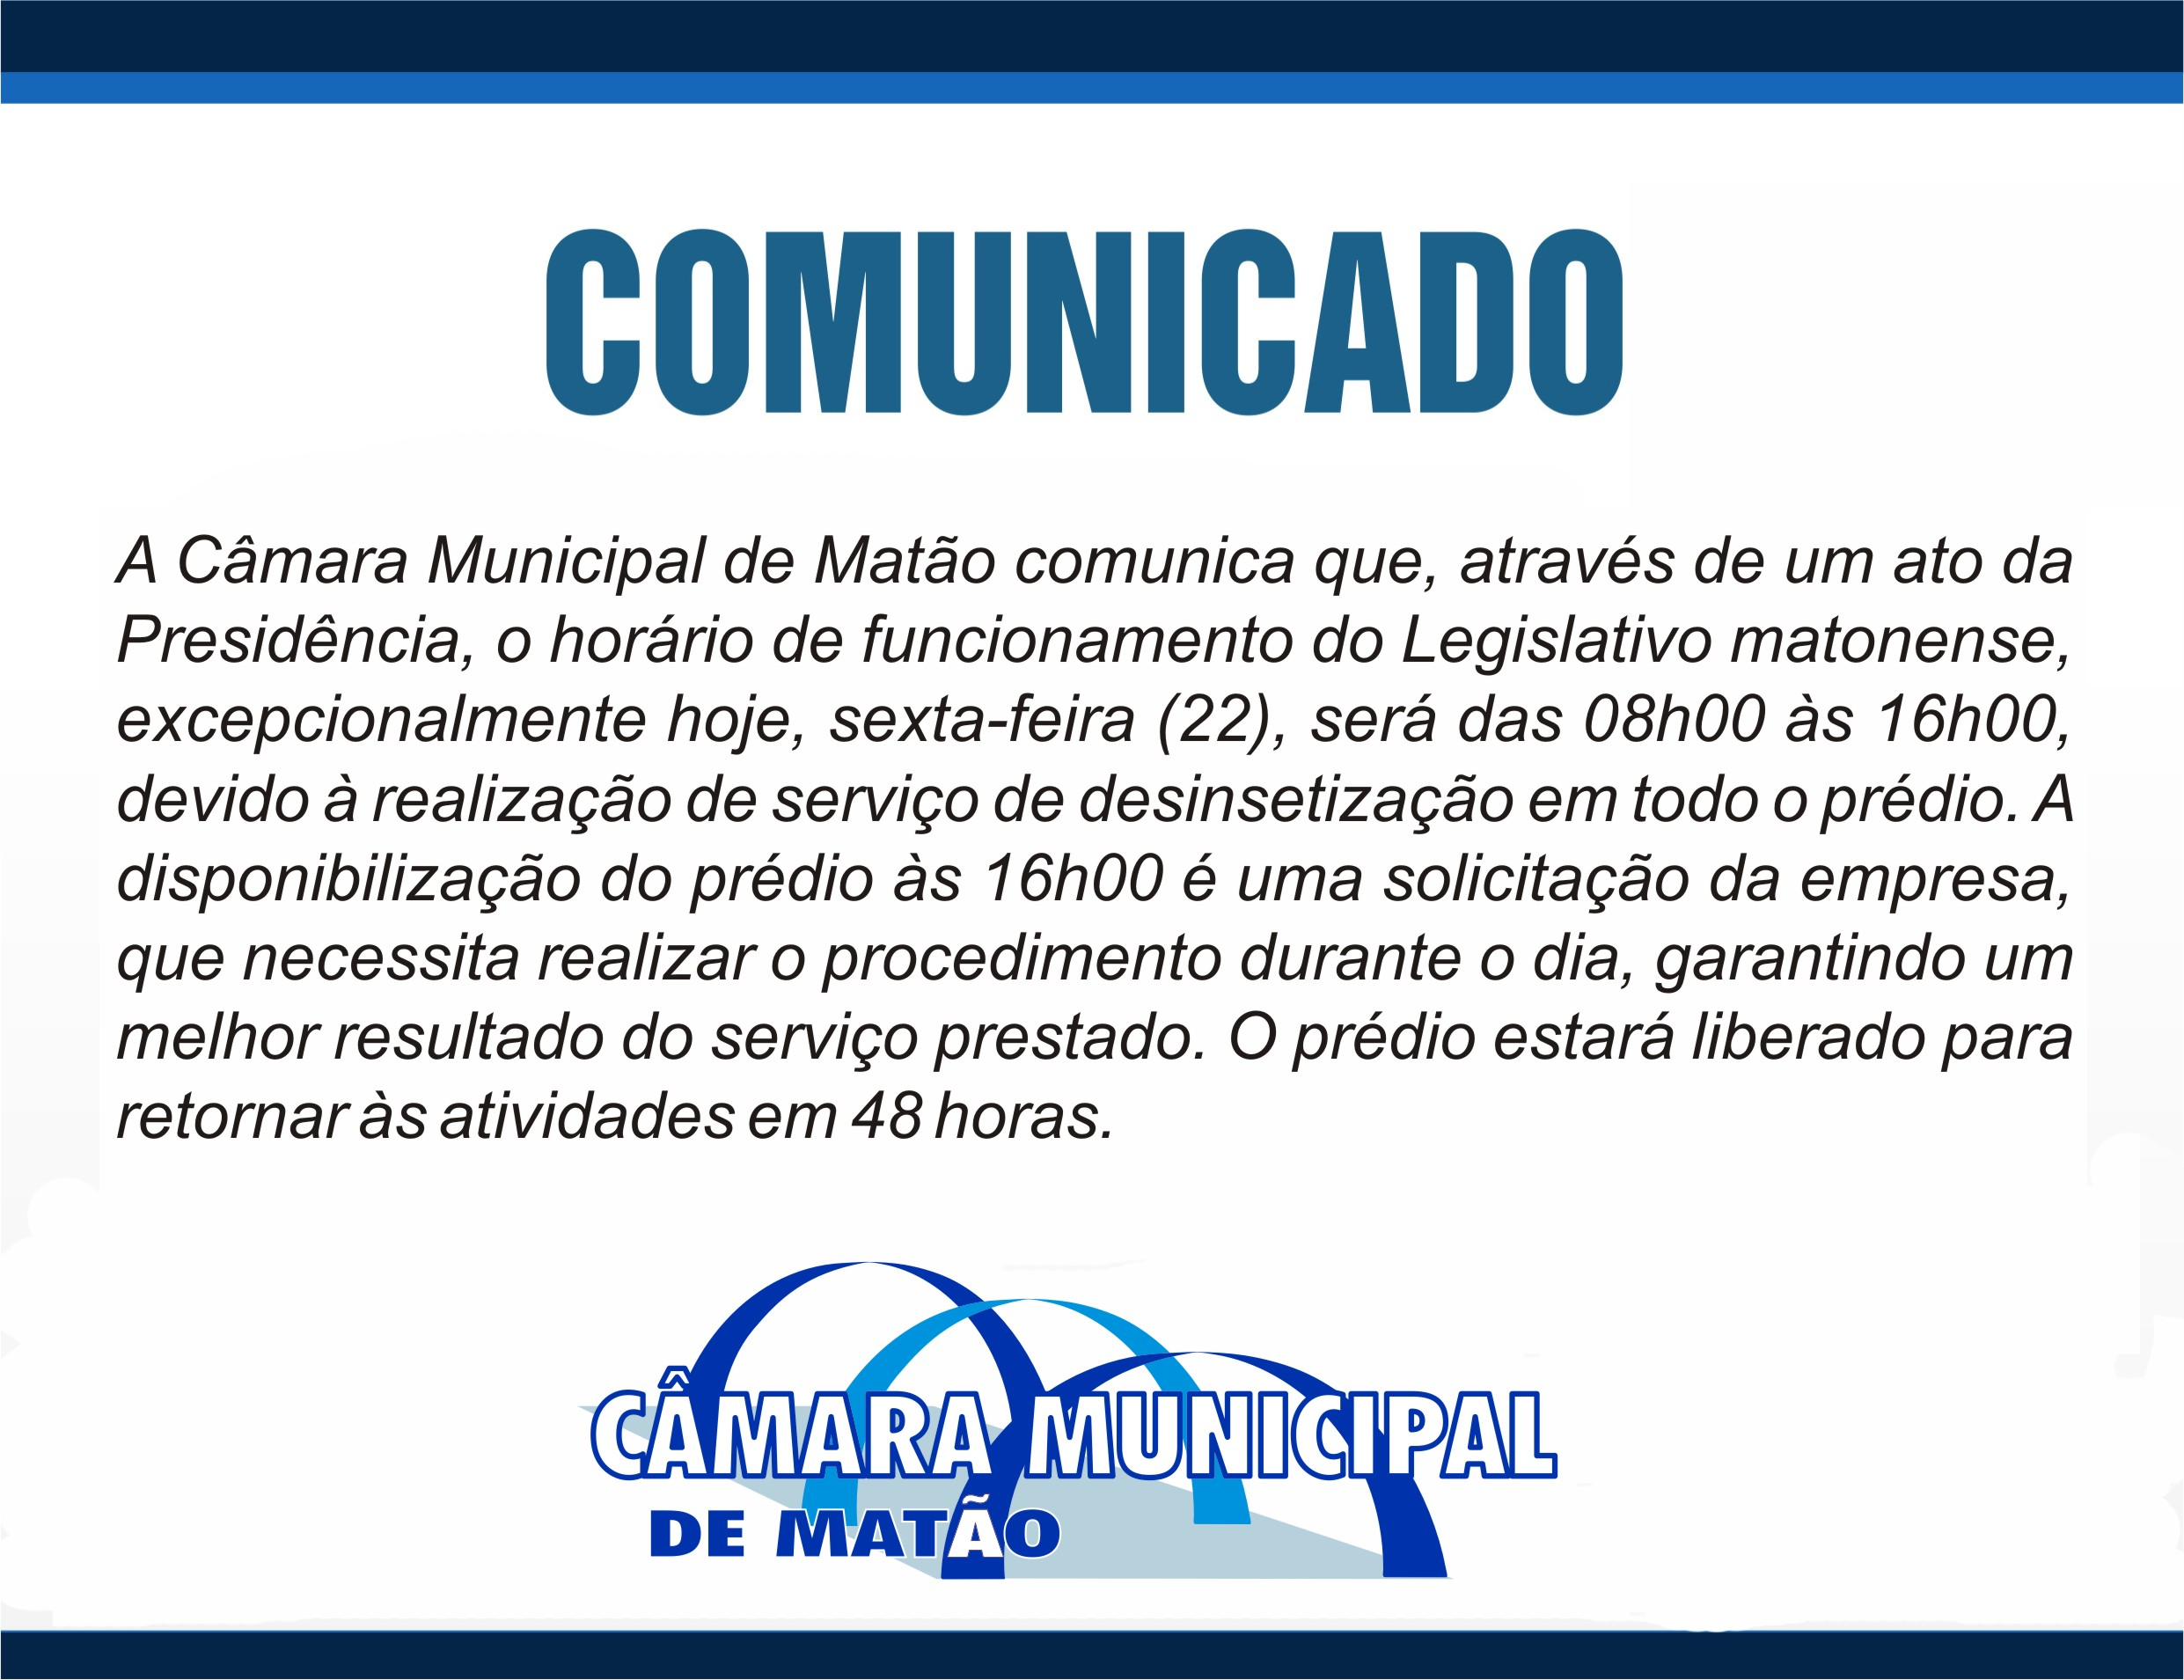 Noticia comunicado